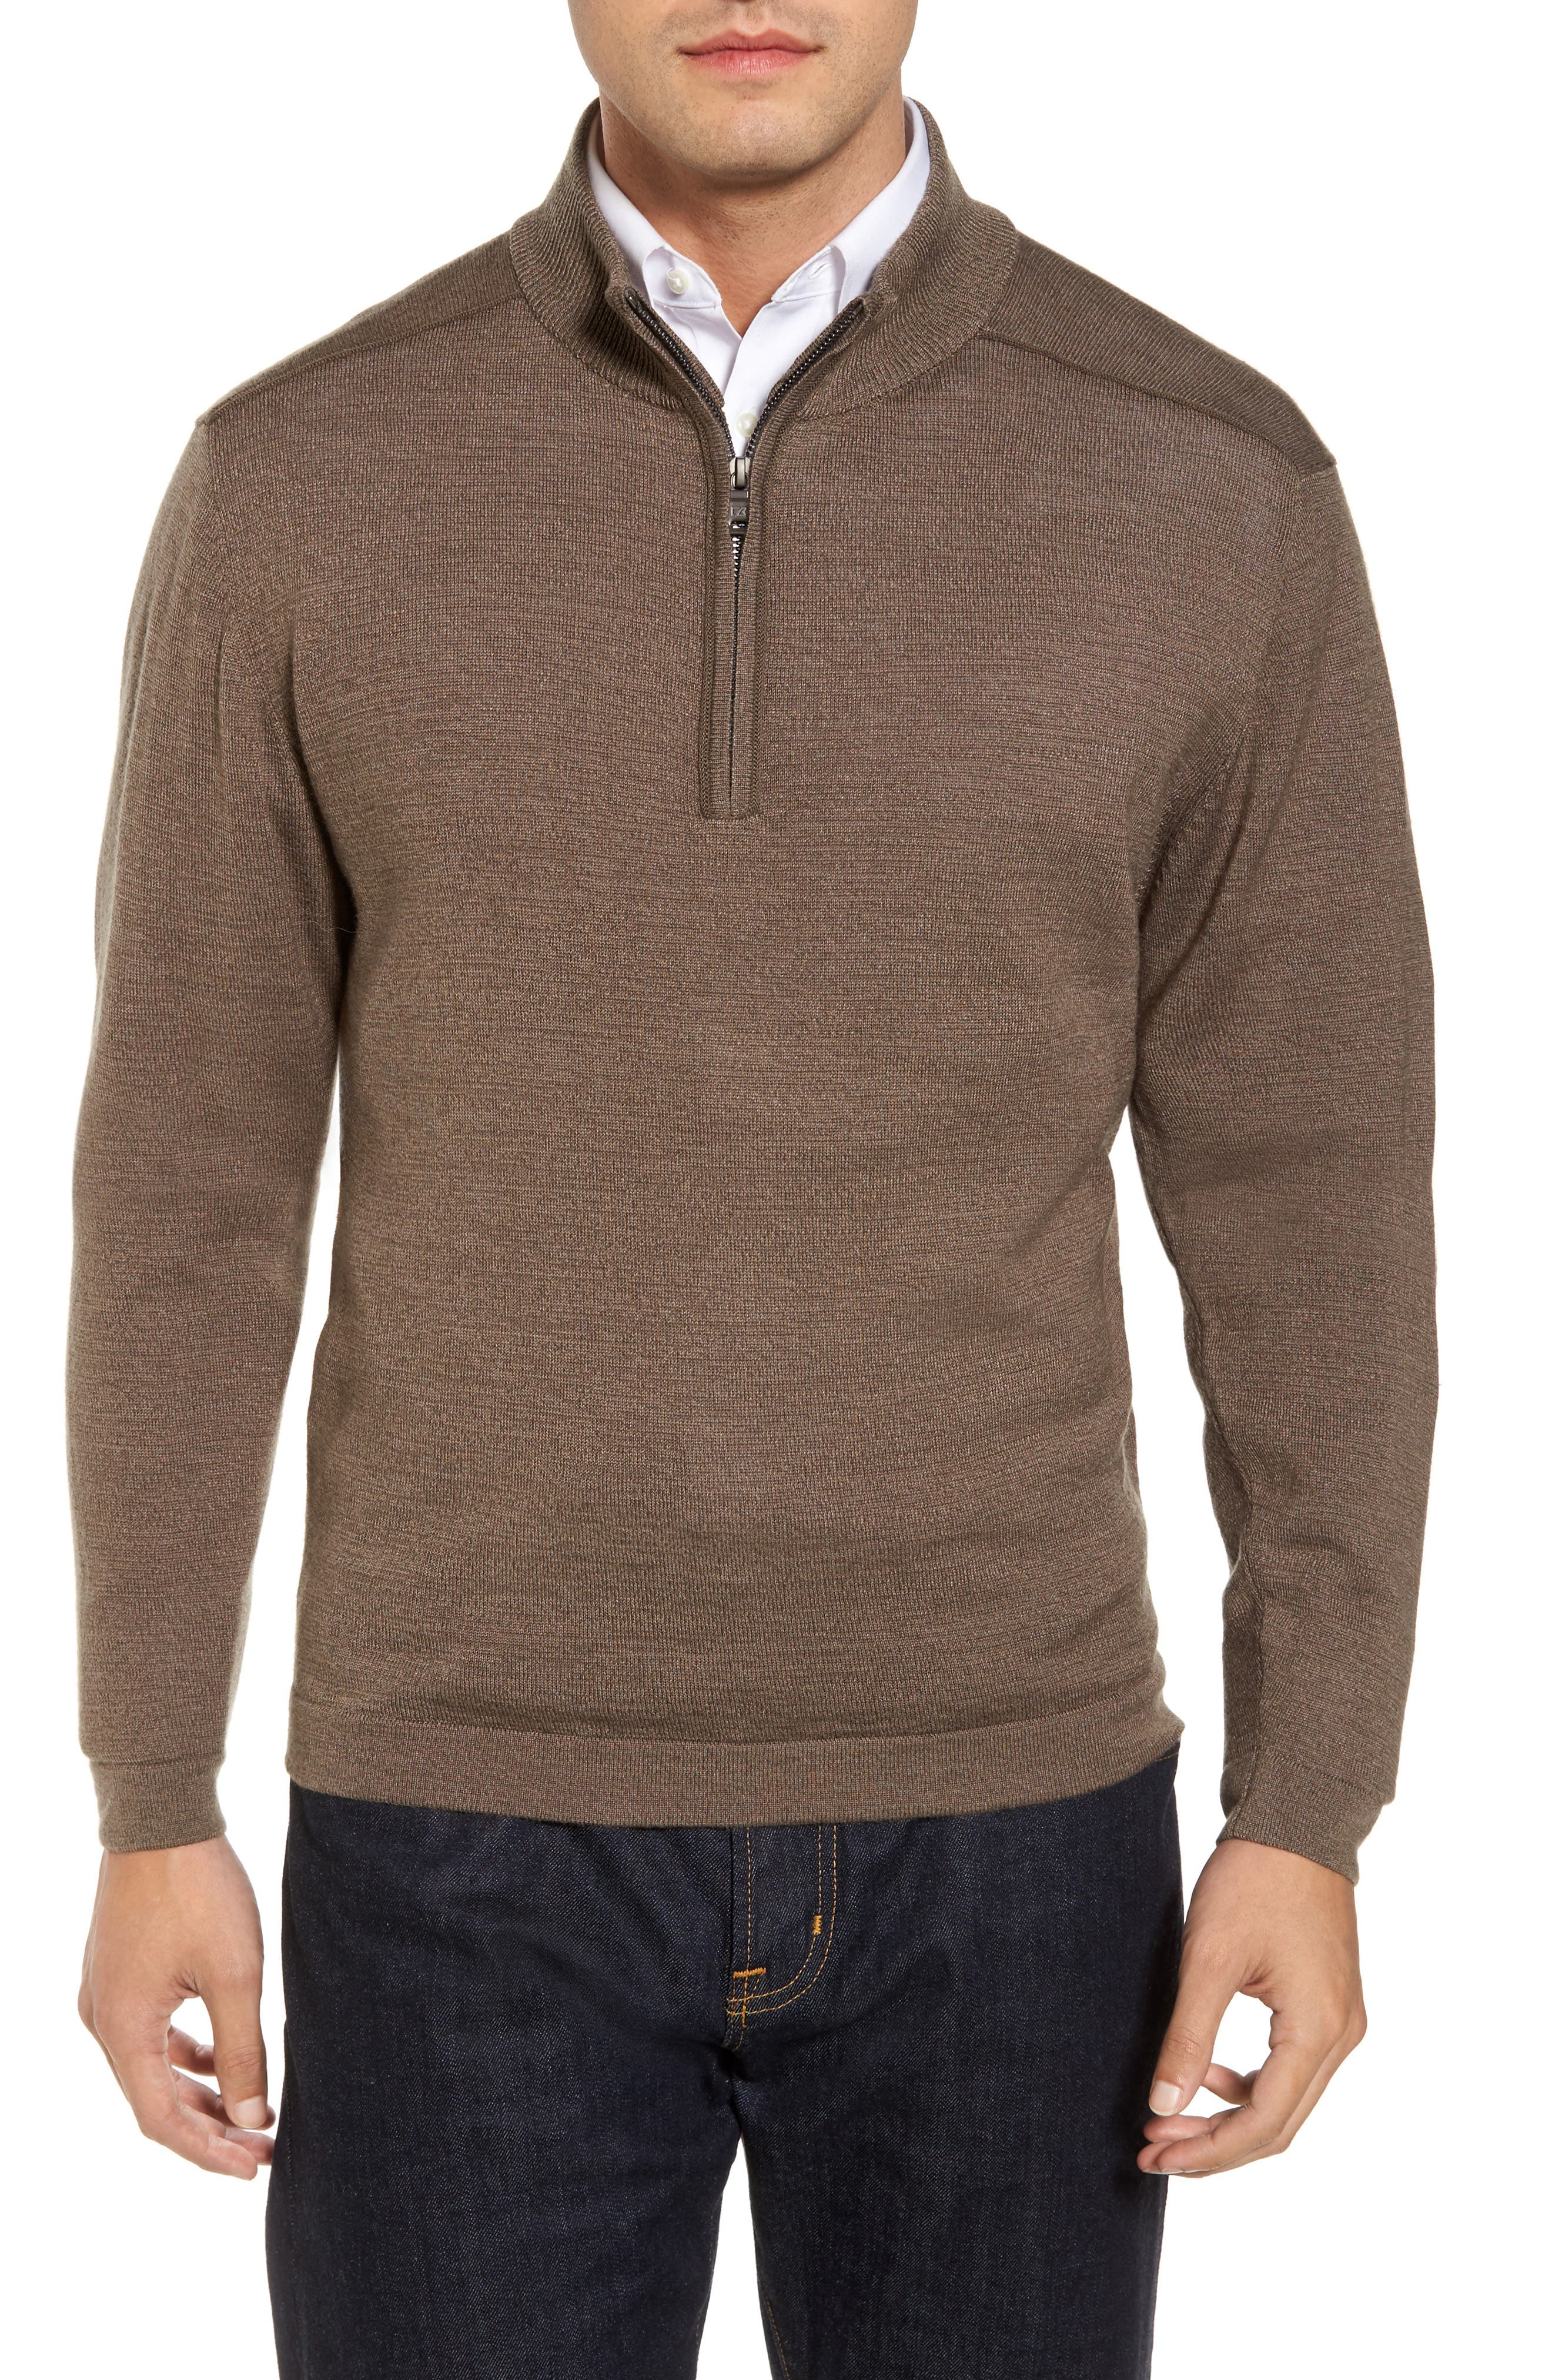 Henry Quarter-Zip Pullover Sweater,                             Main thumbnail 1, color,                             Twig